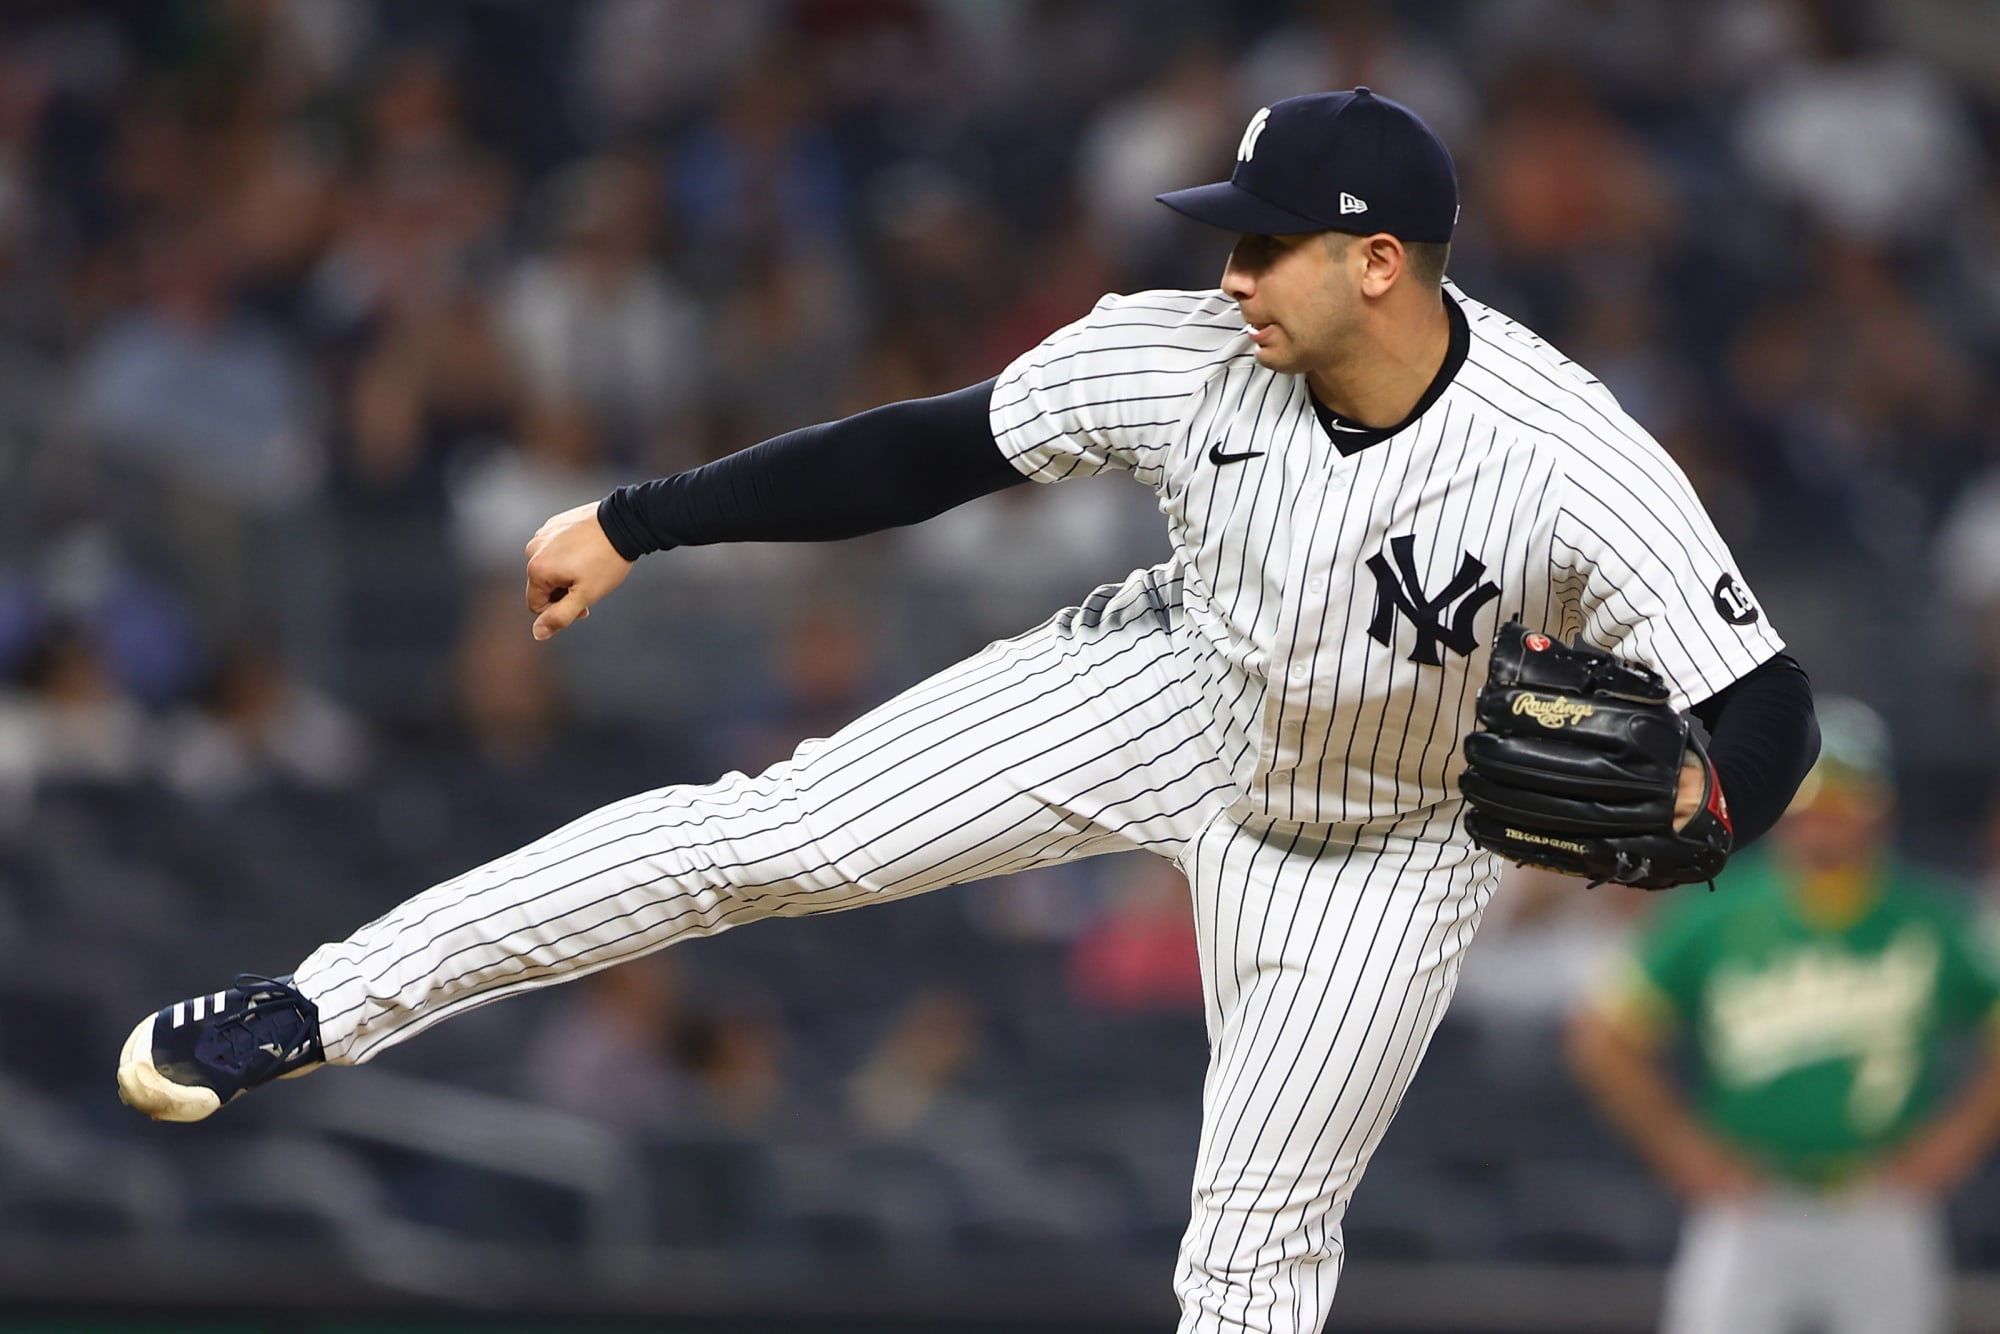 Reds acquire 2 relievers in trade with Yankees to boost bullpen